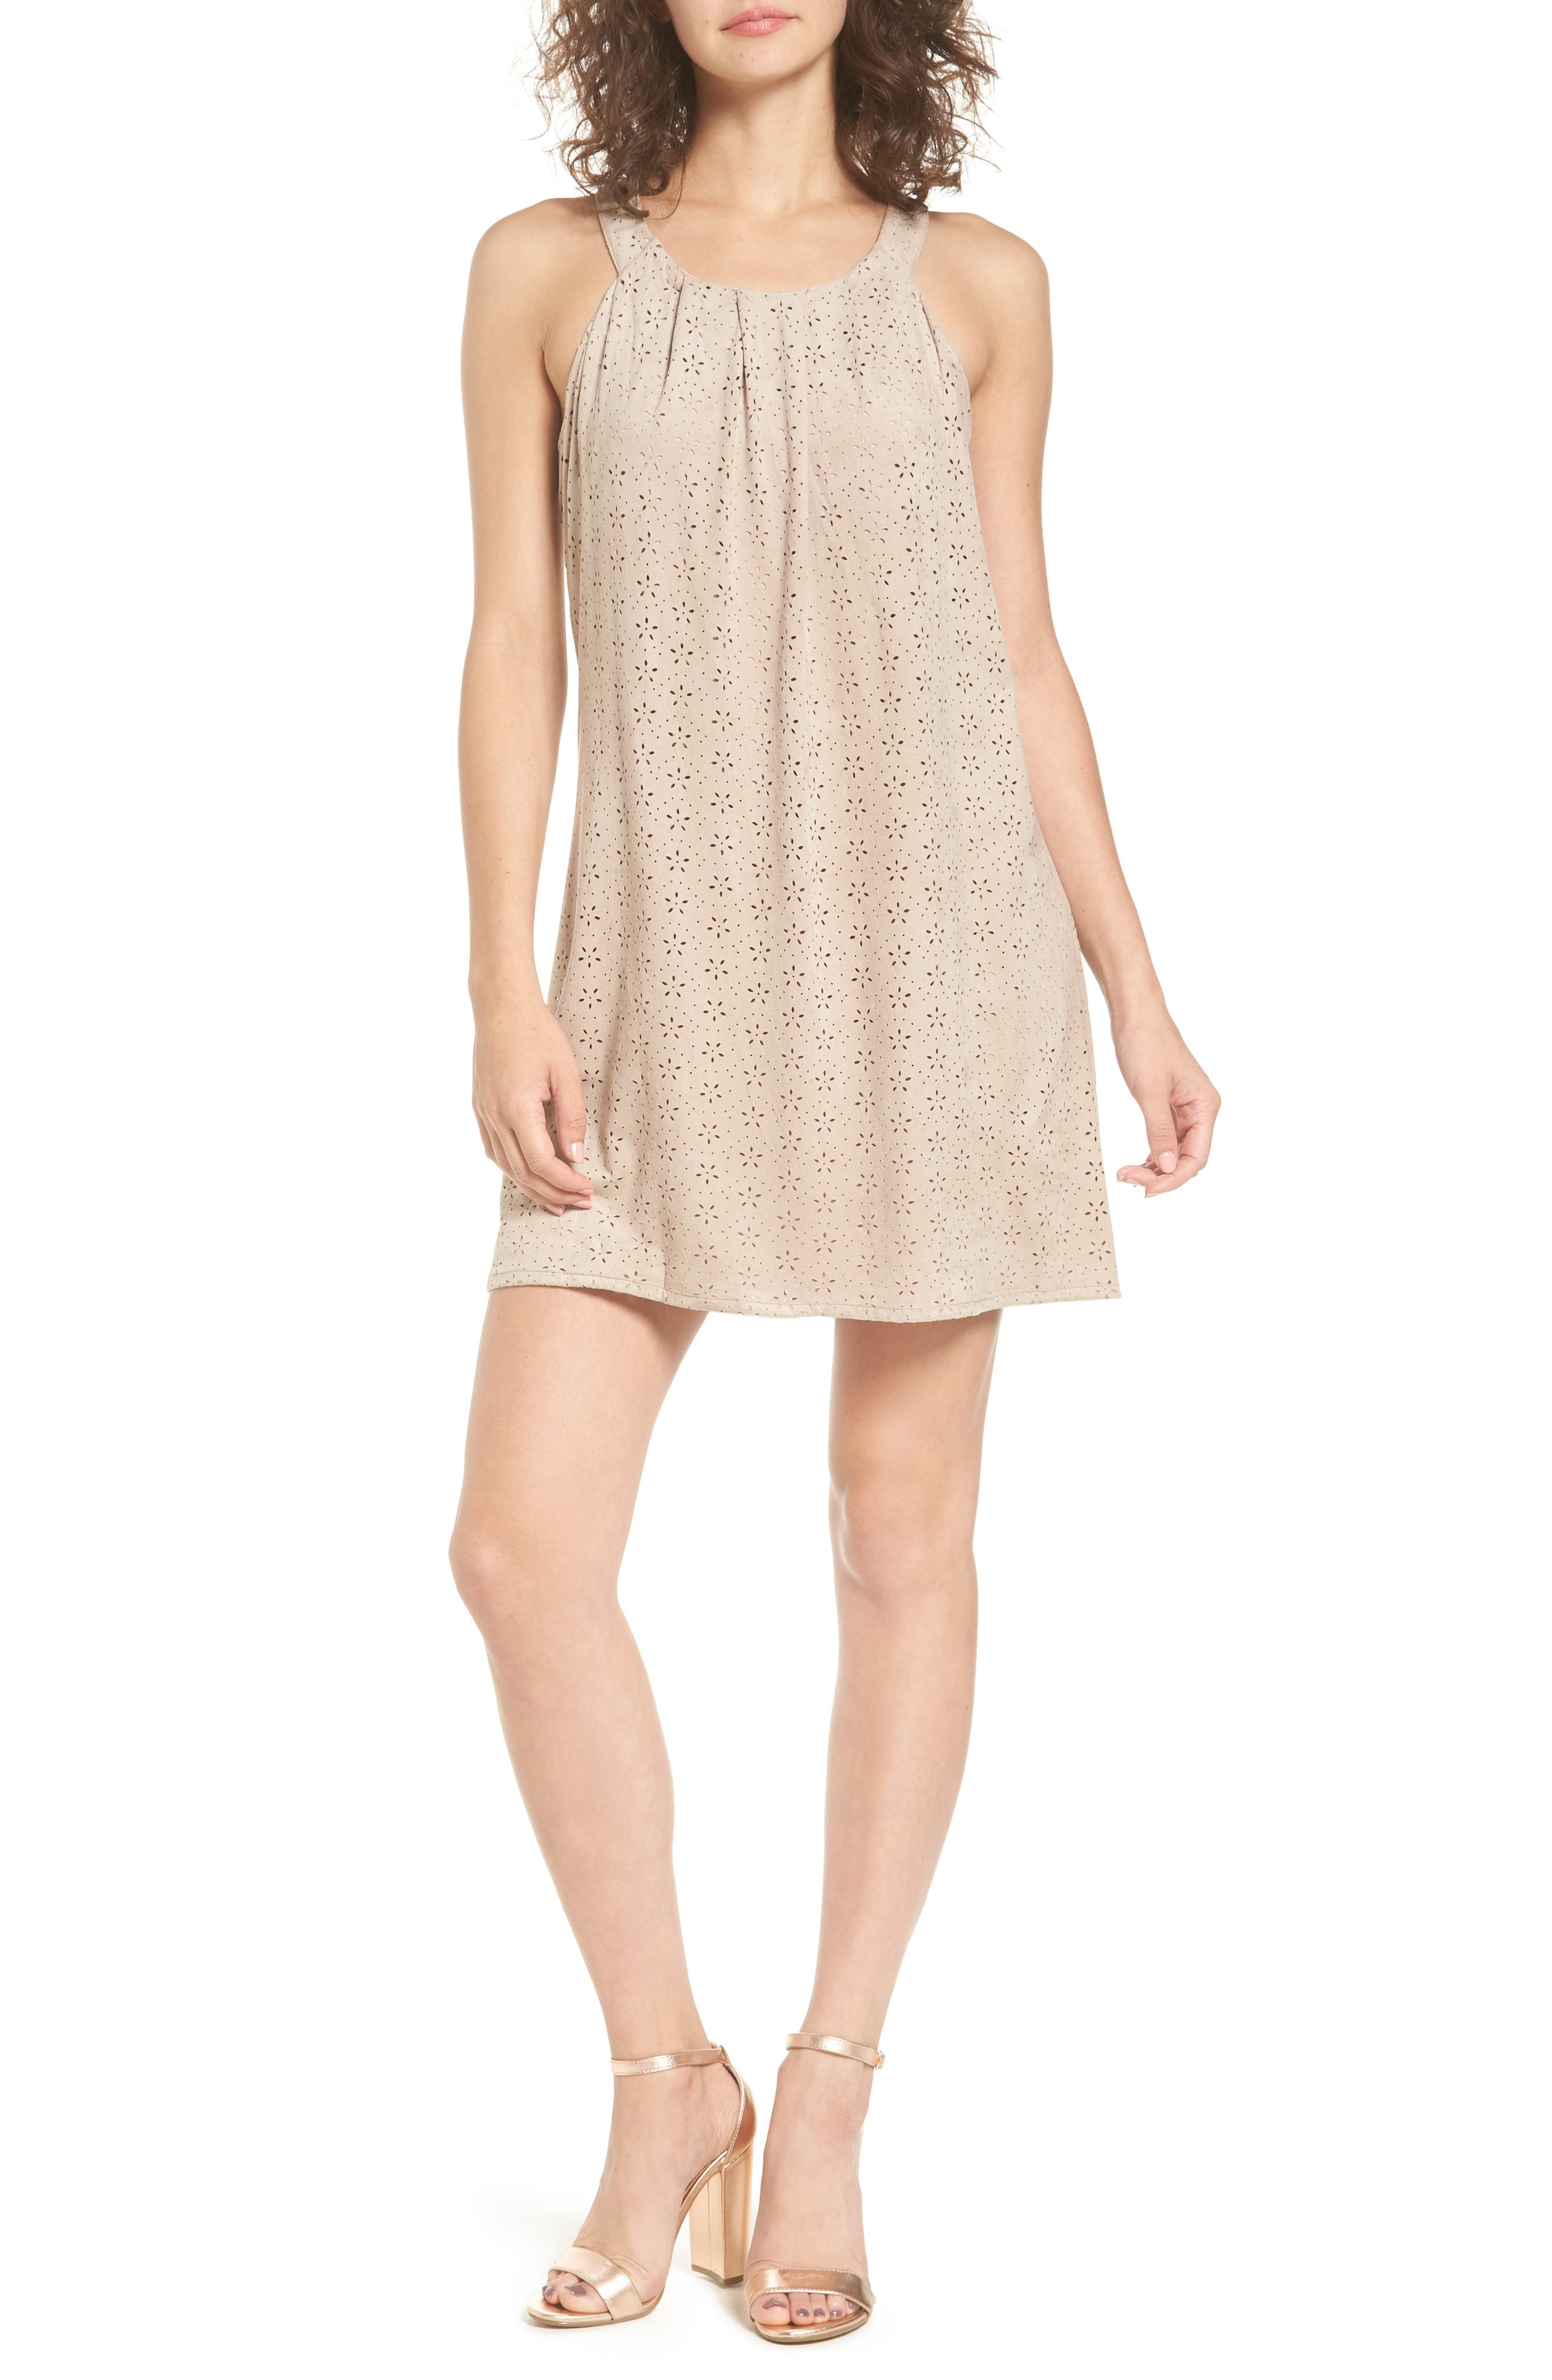 As You Wish Perforated Faux Suede Shift Dress